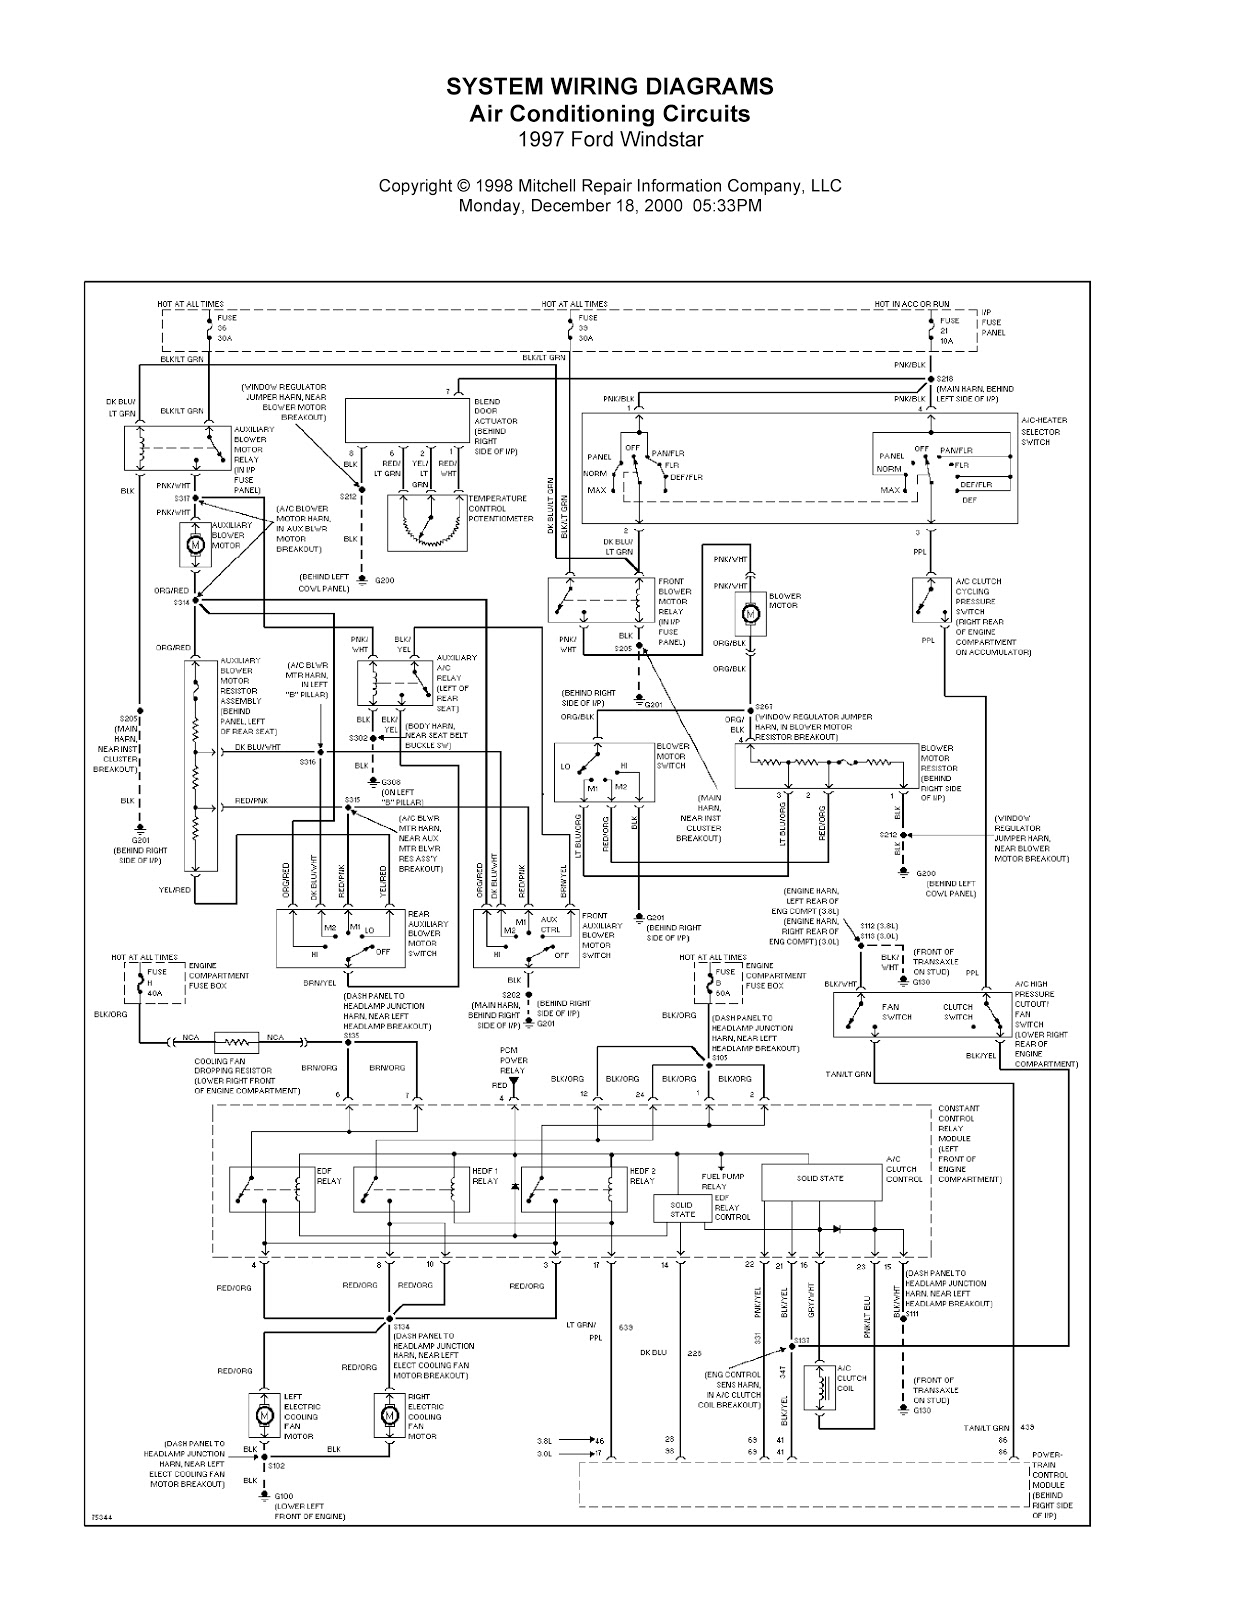 1997 Ford Windstar Complete System Wiring Diagrams | Wiring Diagrams